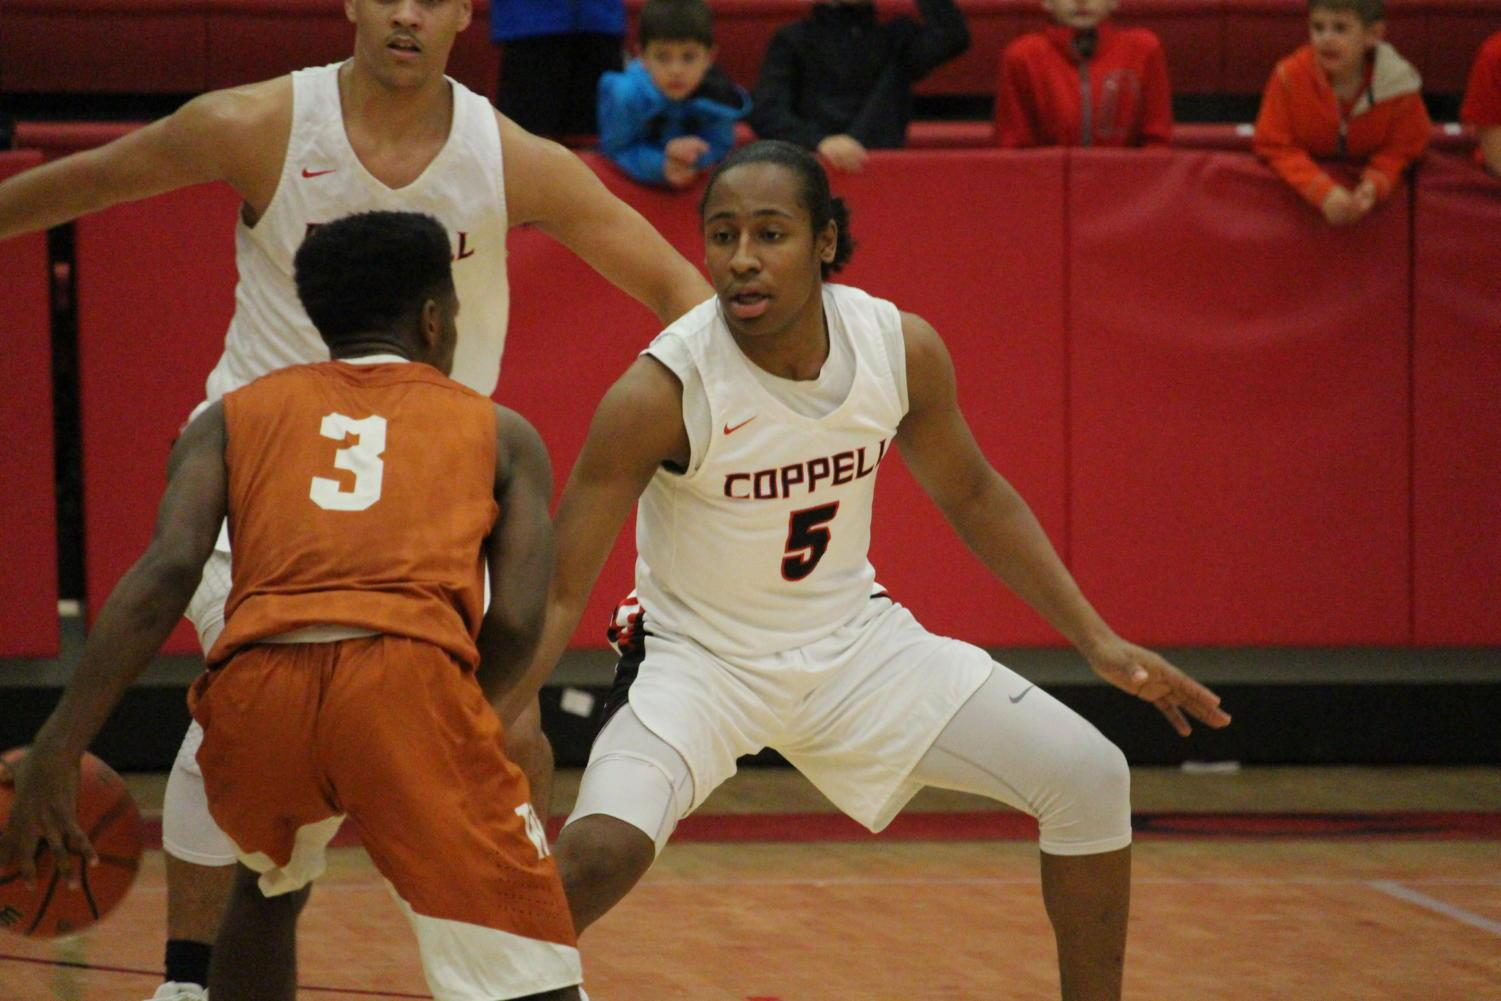 Coppell+High+School+senior+Jaylon+Wilson+plays+defense+during+the+second+quarter+of+Friday+nights+game+in+the+arena.+The+varsity+boys+basketball+team+played+a+home+game+against+WT+White+high+school+taking+the+win+with+a+score+of+74-52.